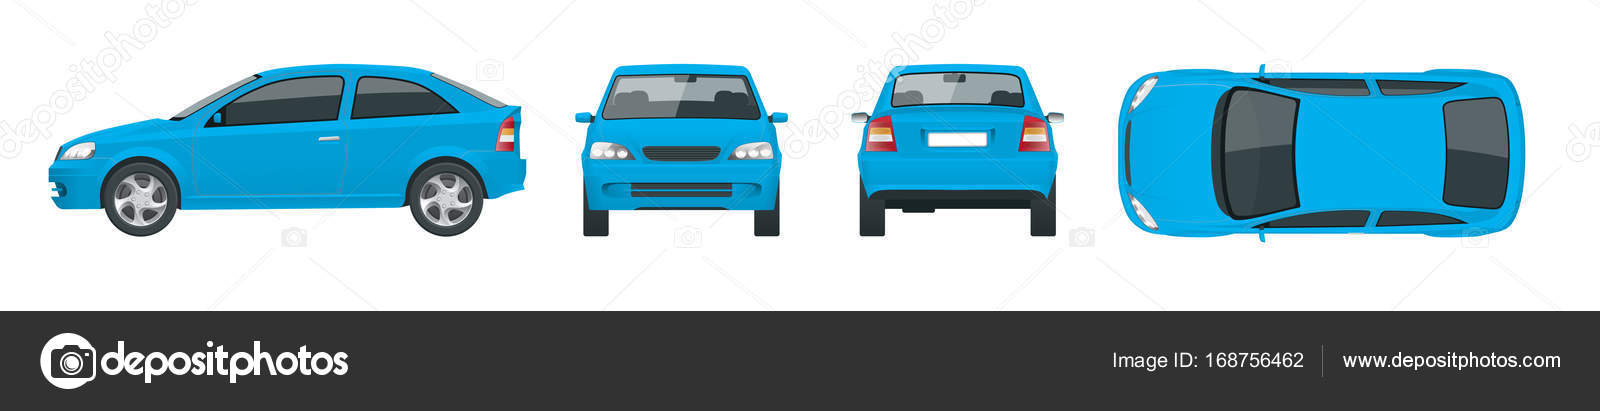 Set of blue Sedan Cars. Isolated car, template for car branding and ...